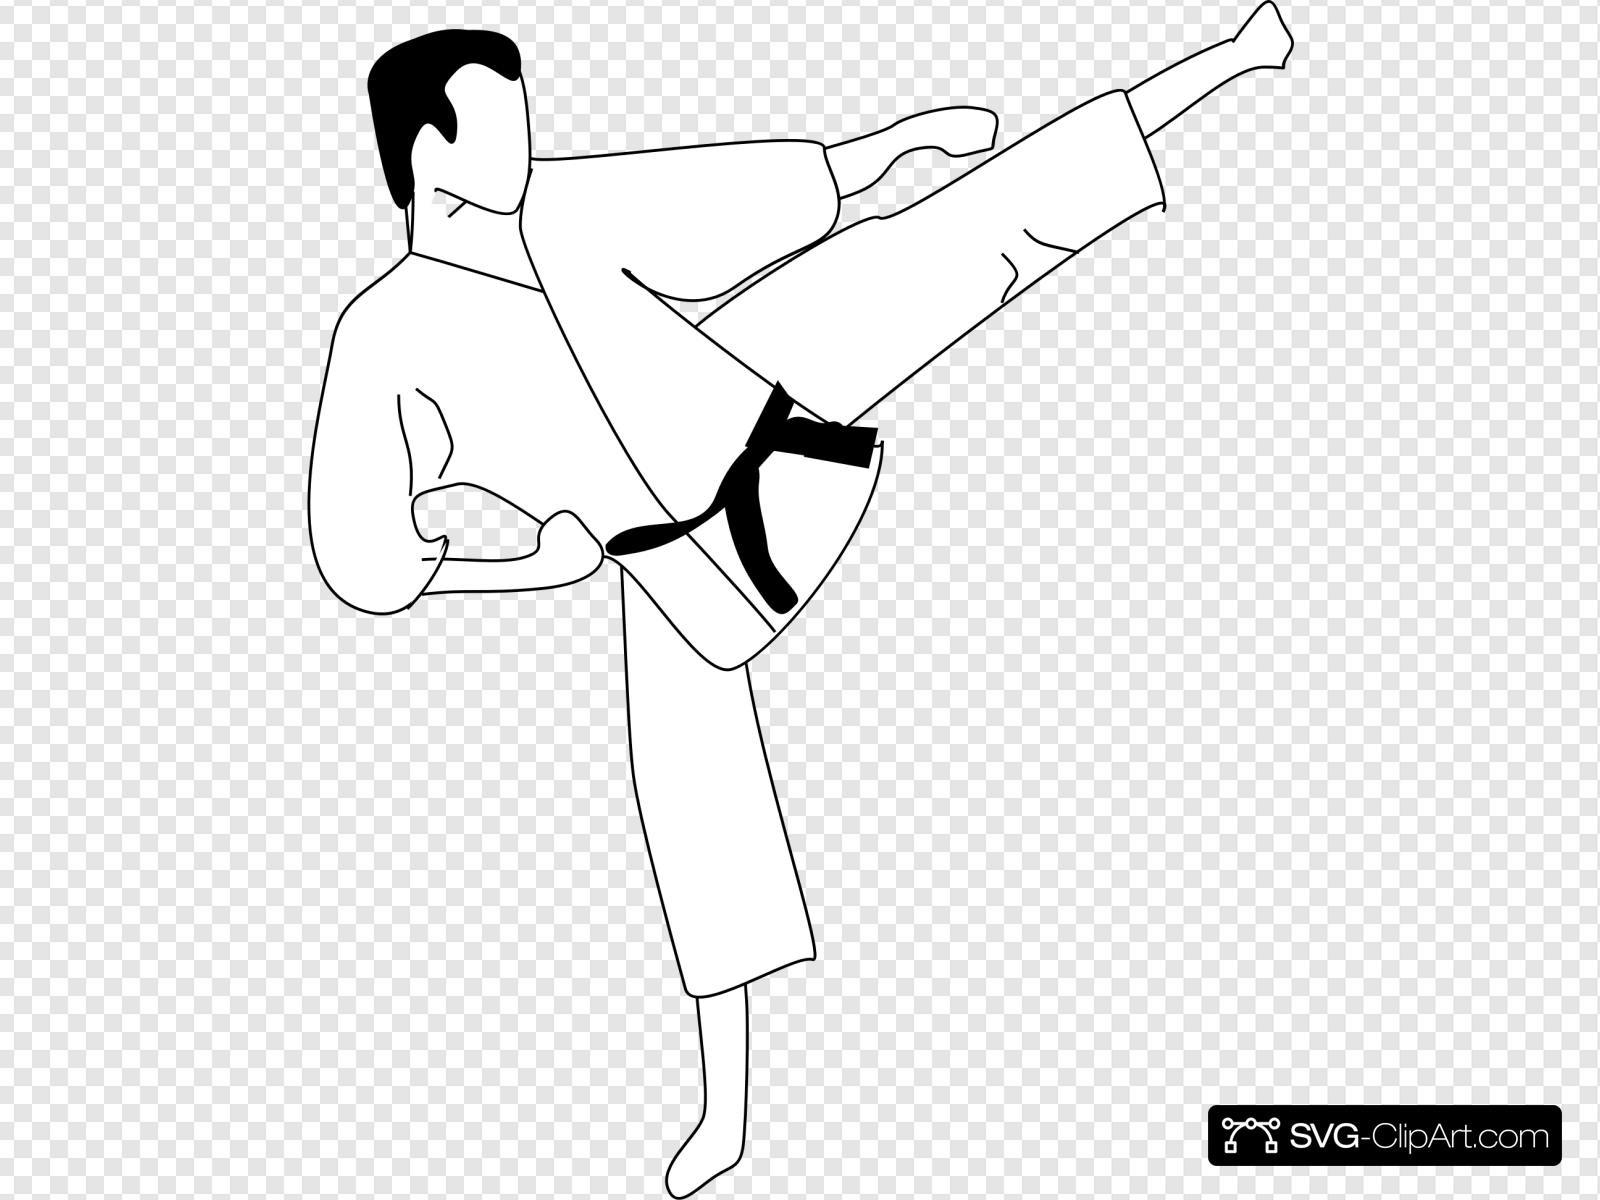 Karate Kick Clip art, Icon and SVG.